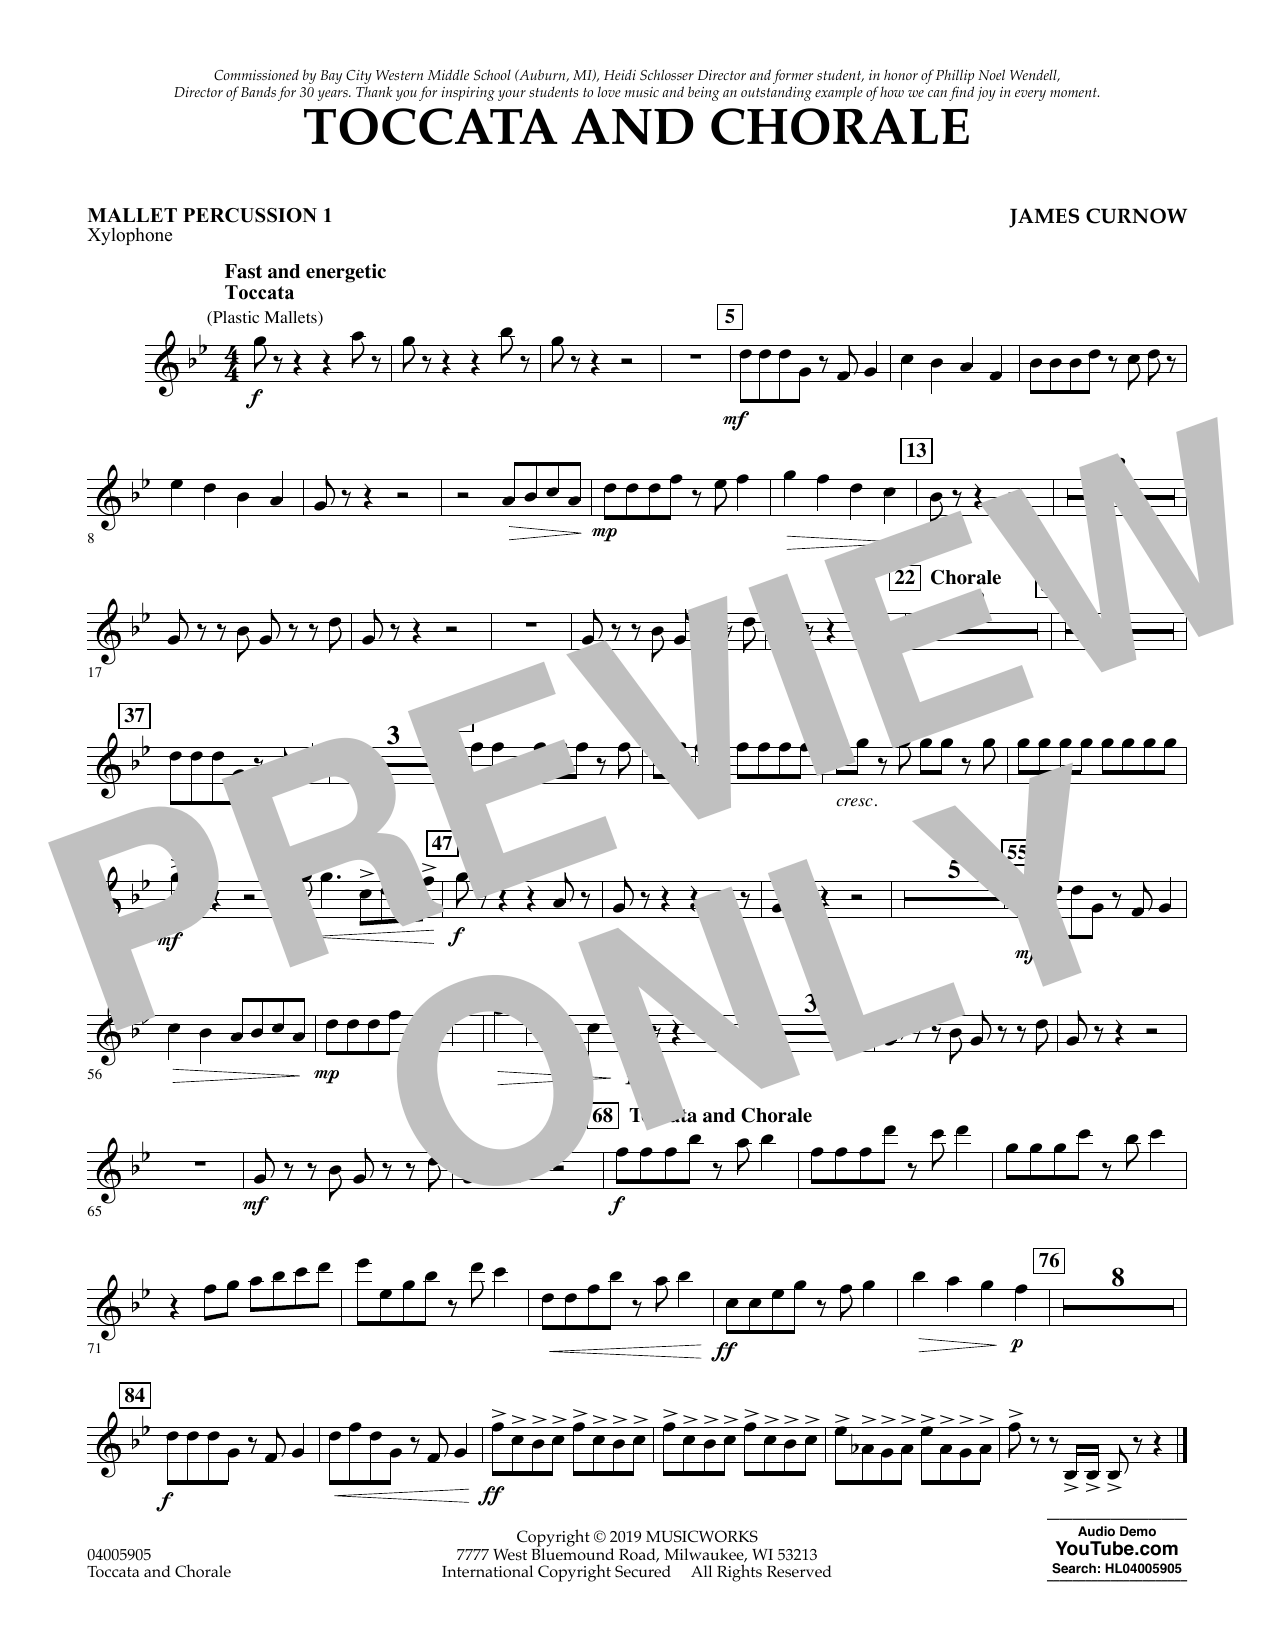 James Curnow Toccata and Chorale - Mallet Percussion 1 sheet music preview music notes and score for Concert Band including 1 page(s)